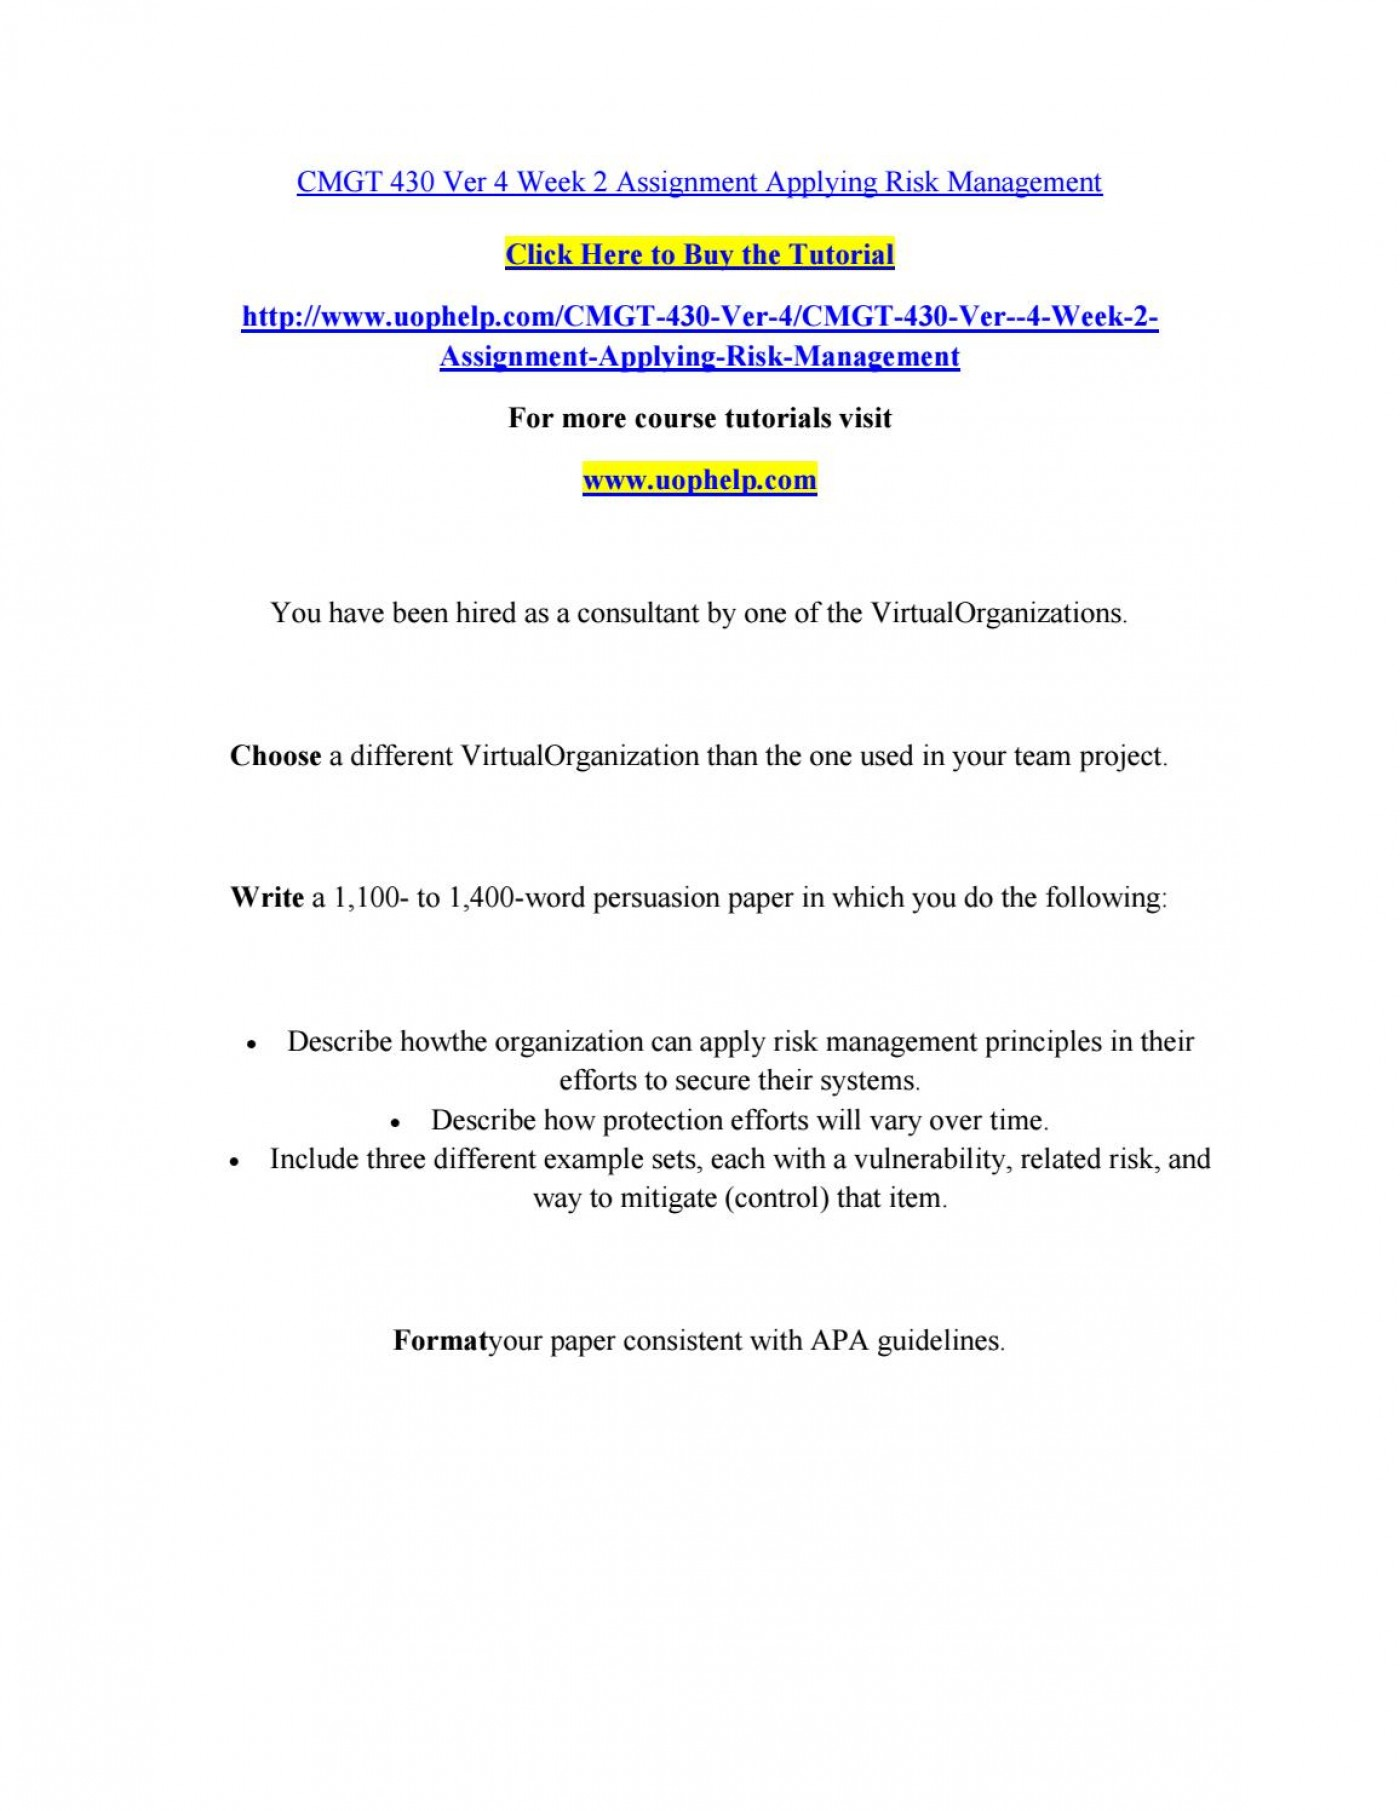 005 Parts Of Research Paper Pdf Page 1 Staggering Preliminary A Chapter 1-5 1400